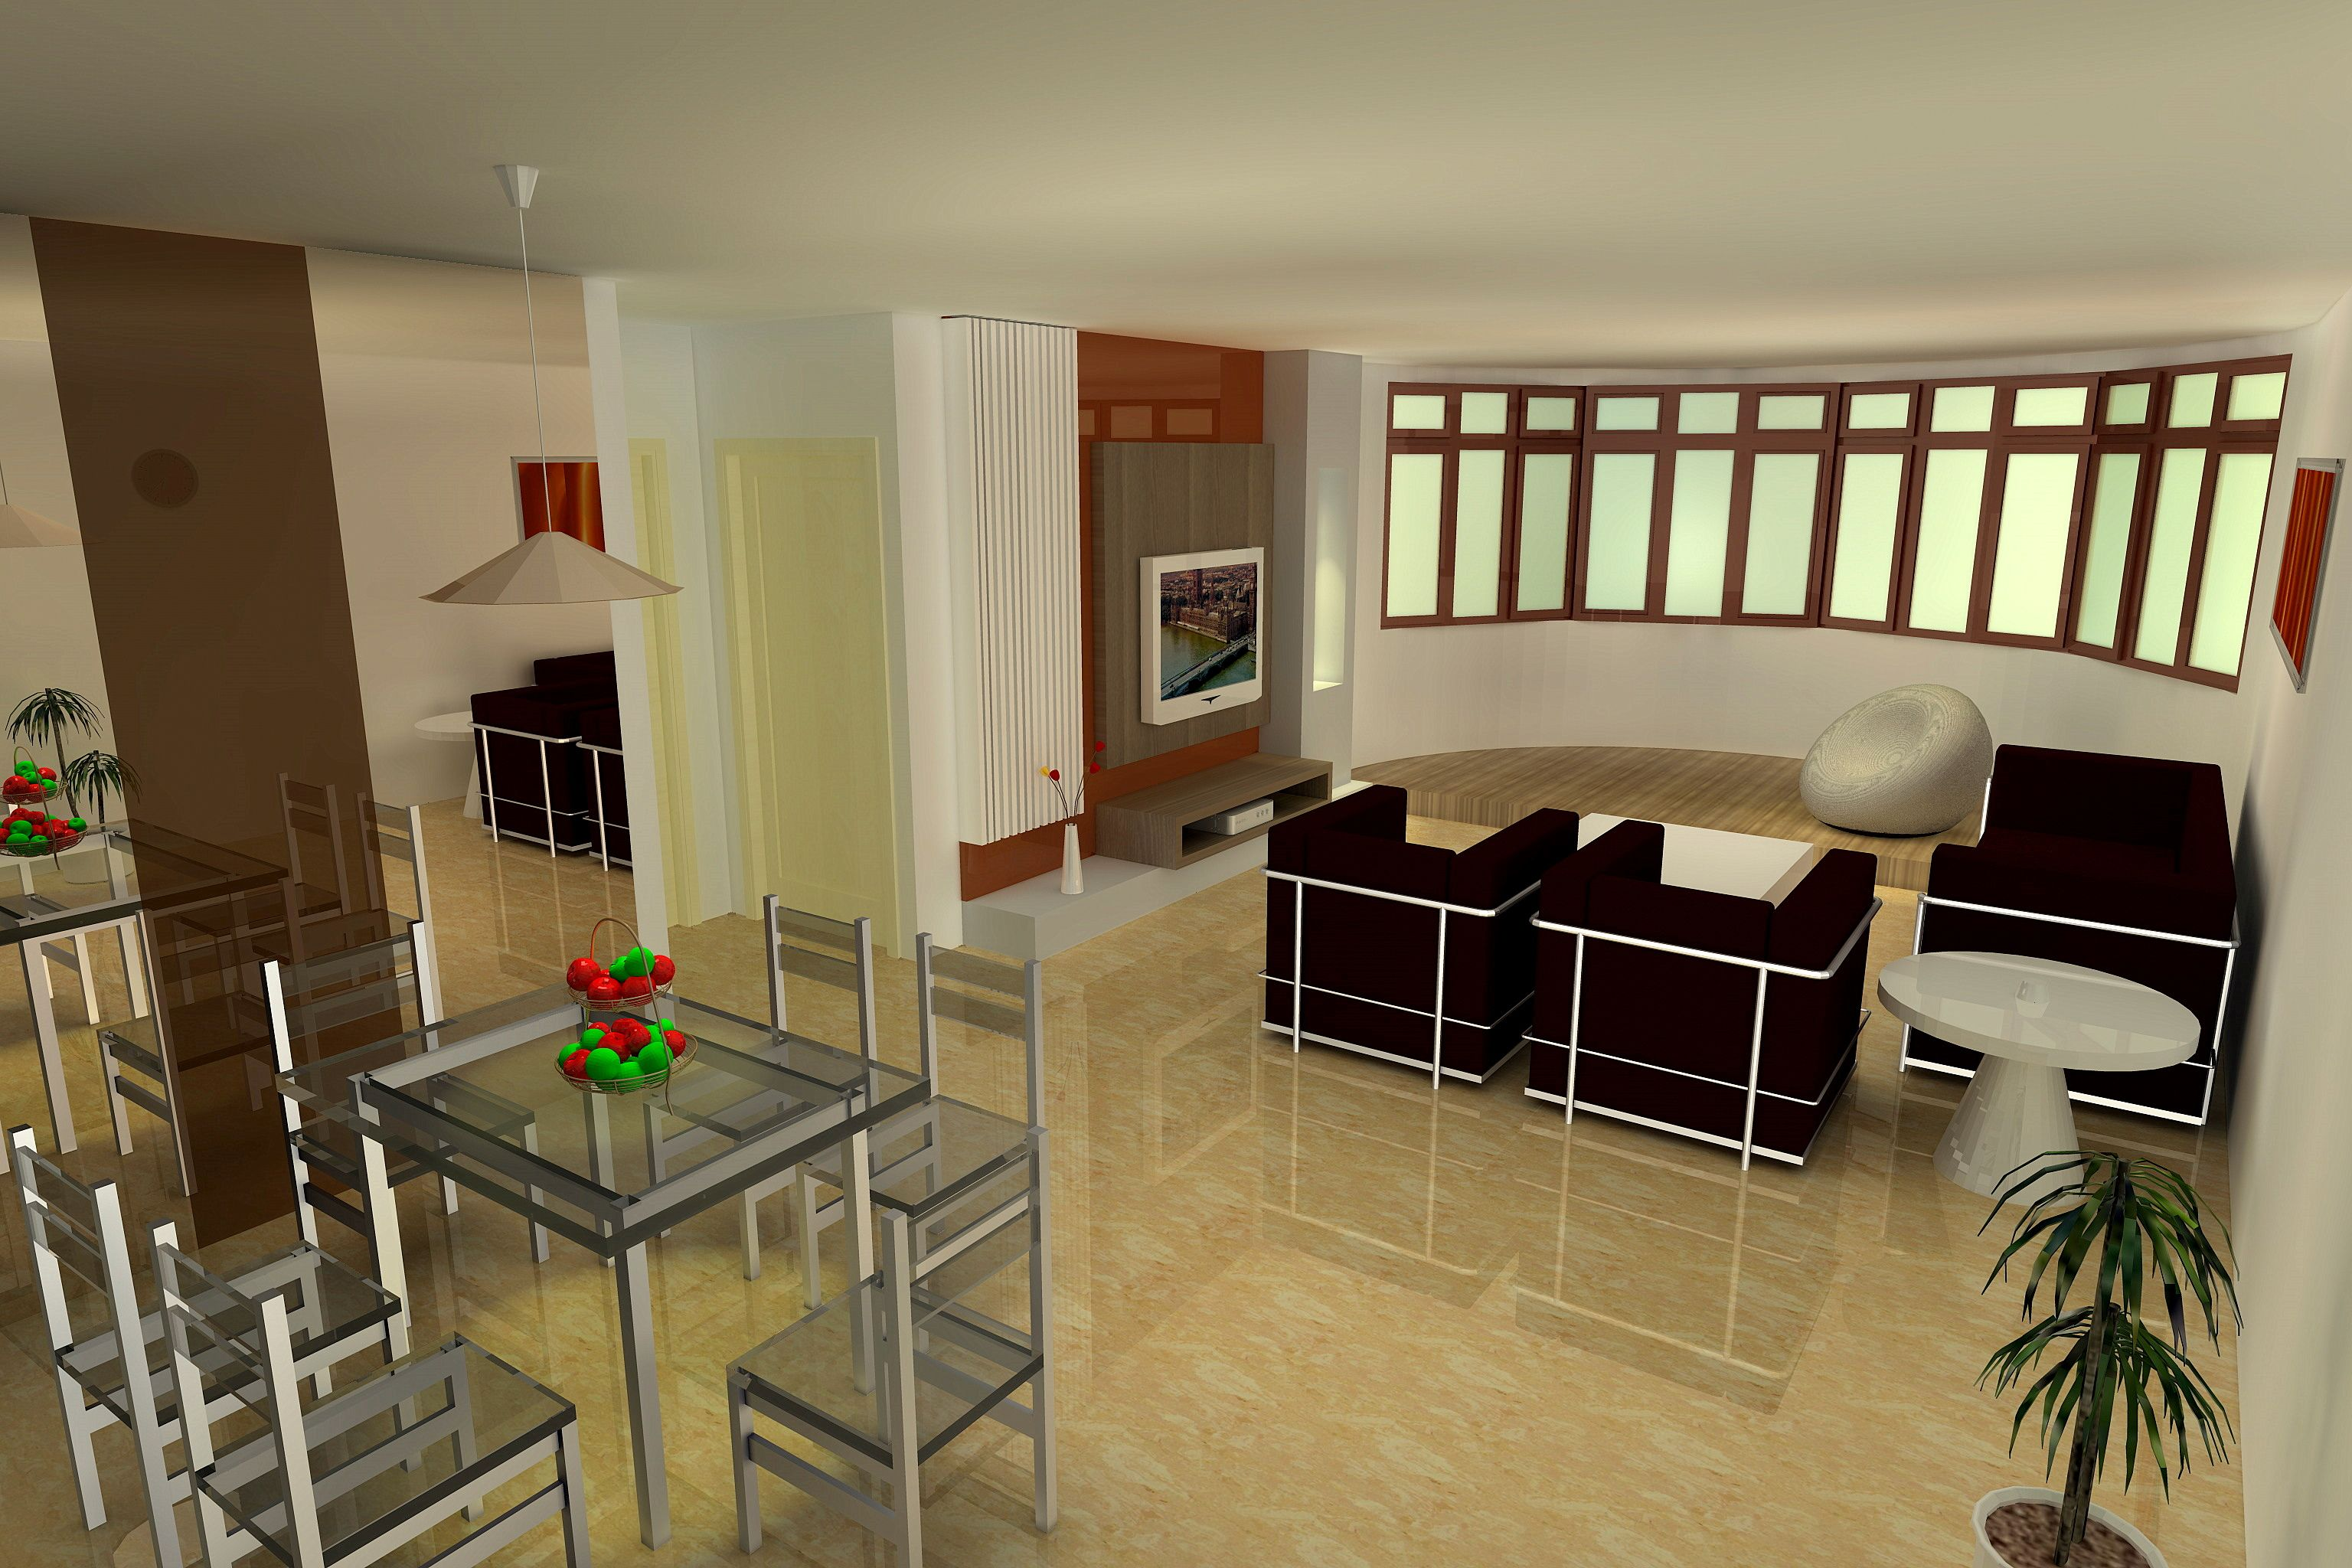 Property Interior Concepts For Kitchen Remodeling - http ...